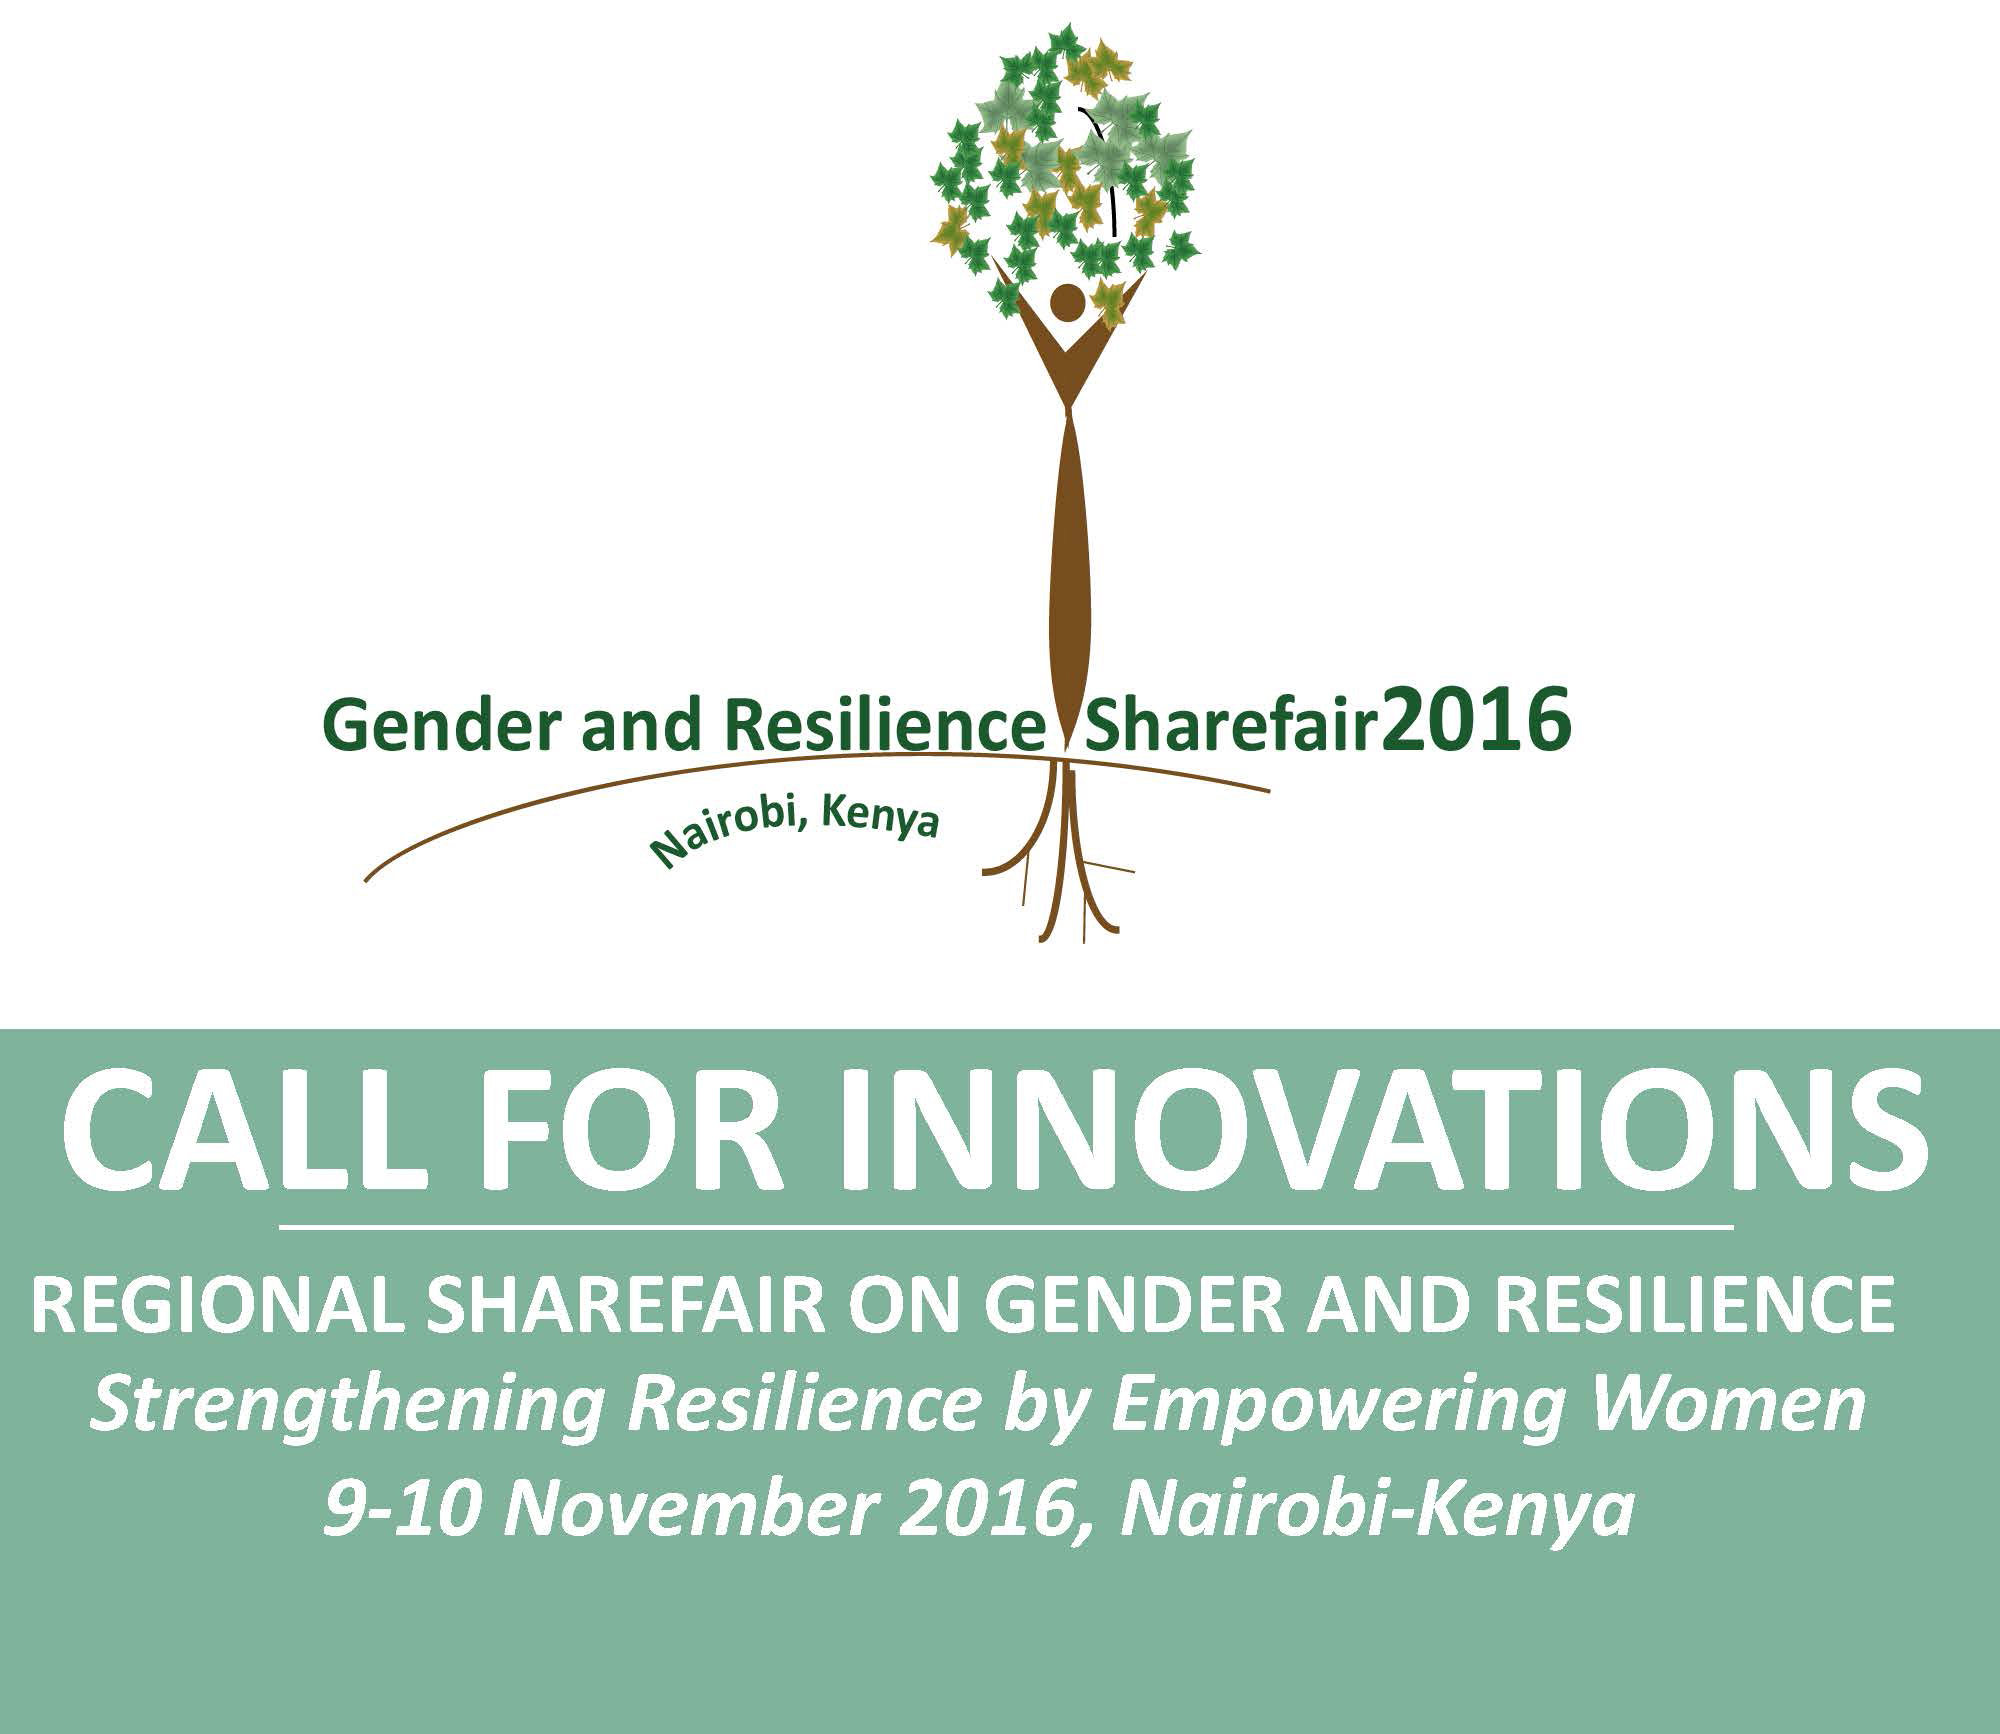 Call for Innovations: 2016 Regional ShareFair on Gender and Resilience